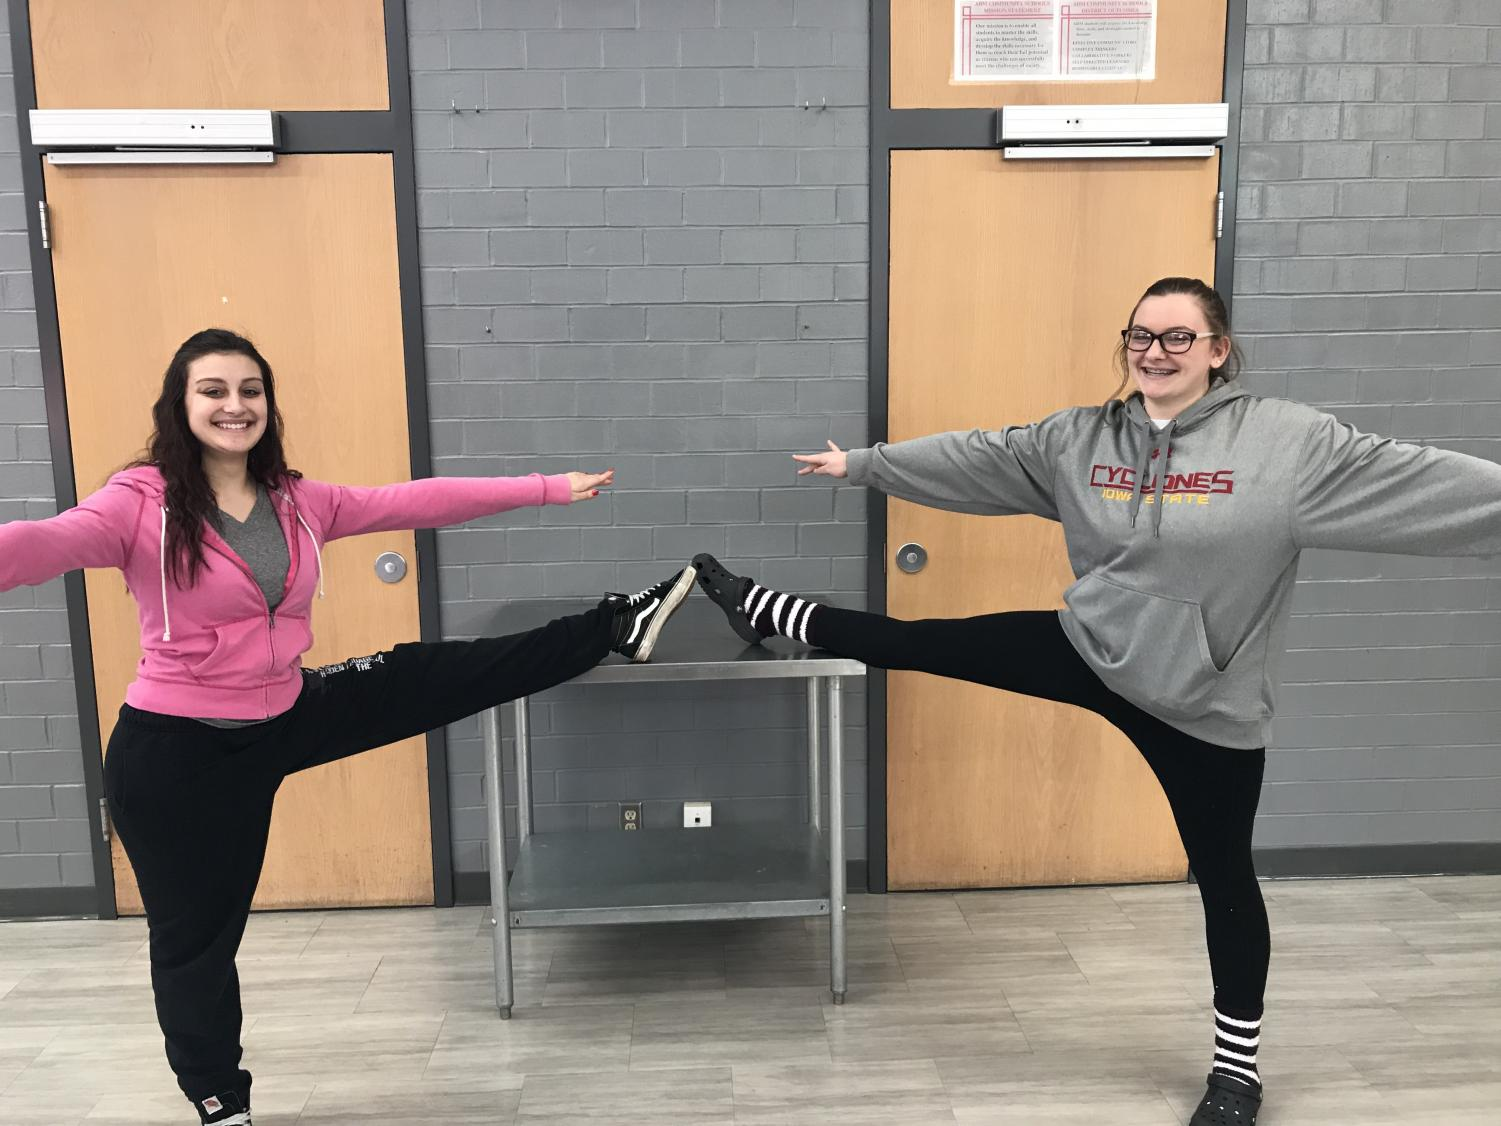 Katelyn, right, pictured with a fellow dancer, Alayah, left, after being named Dance Athlete of the Month.